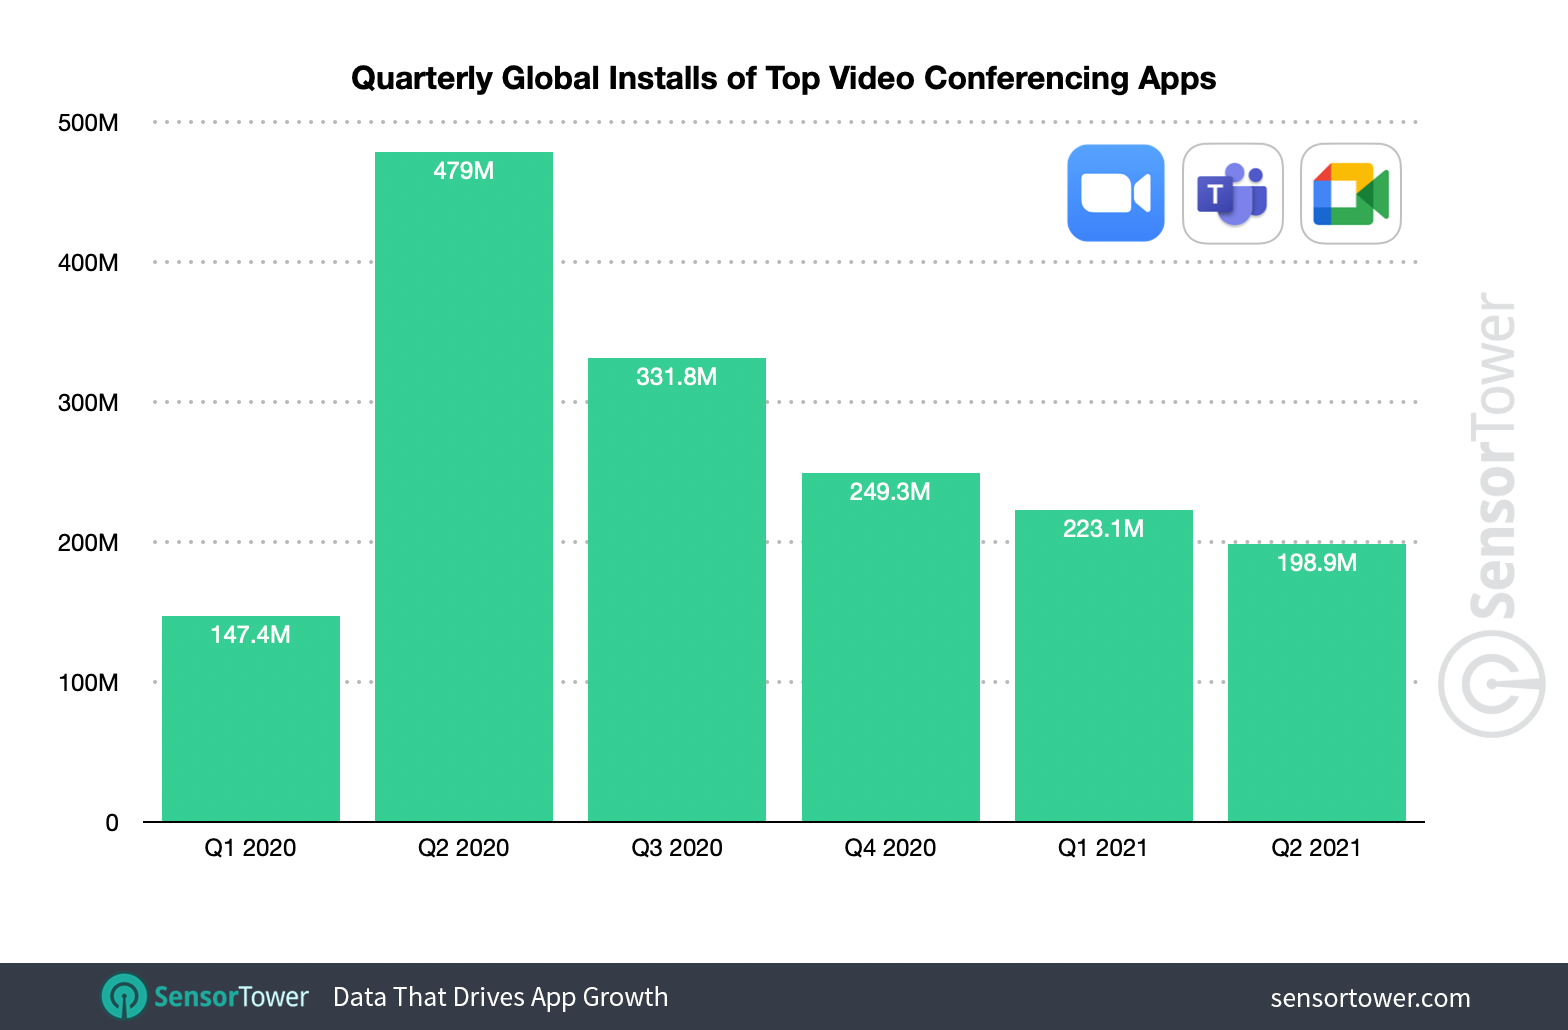 Zoom, Microsoft Teams, and Google Meet see fairly consistent installs each quarter